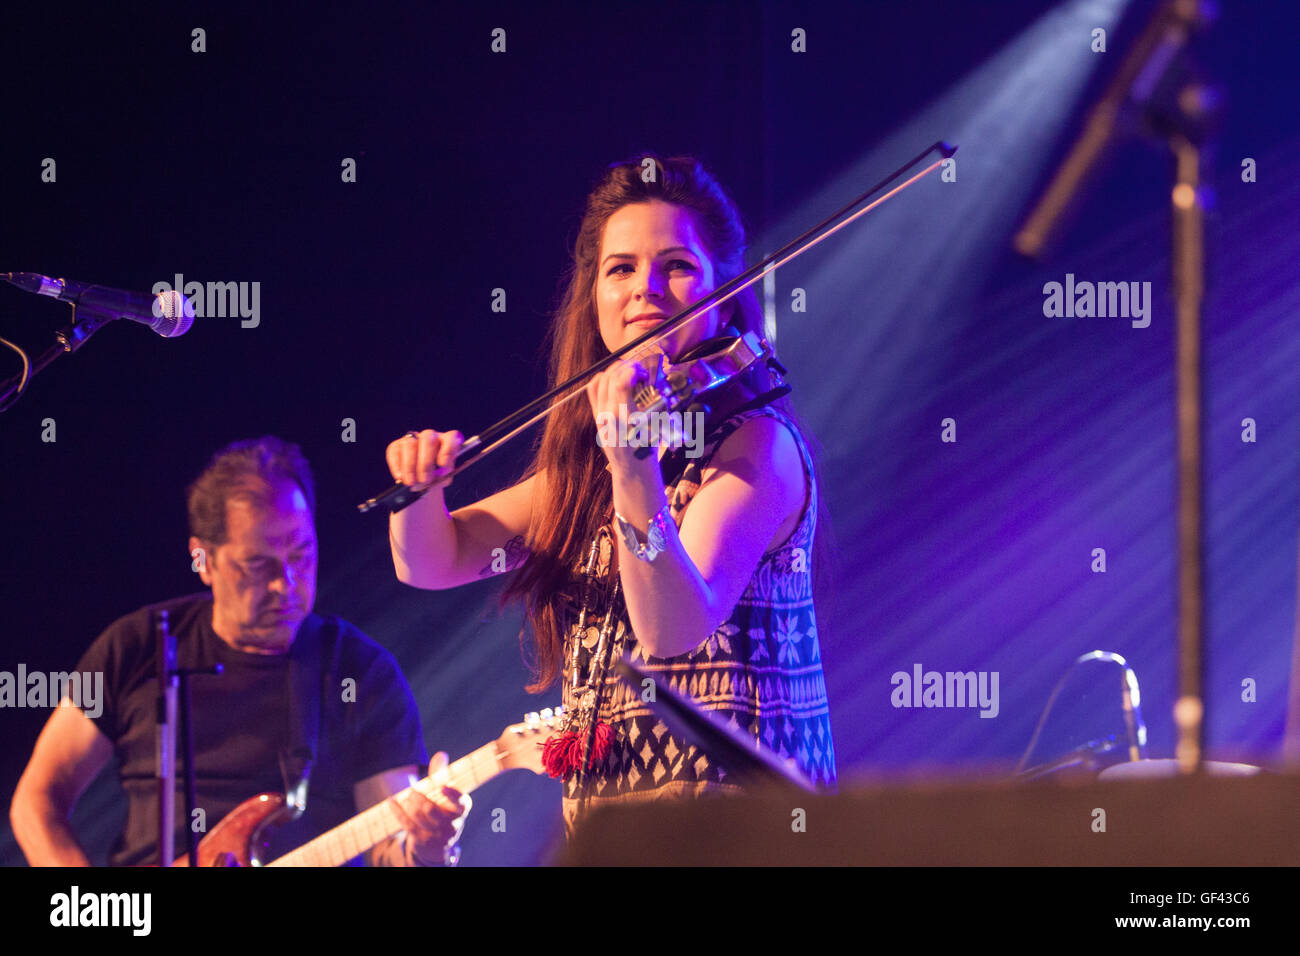 Sidmouth Folk Week, Sidmouth, Devon, 28th July 16 Jessie May Smart of electric-folk band Steeleye Span headline - Stock Image